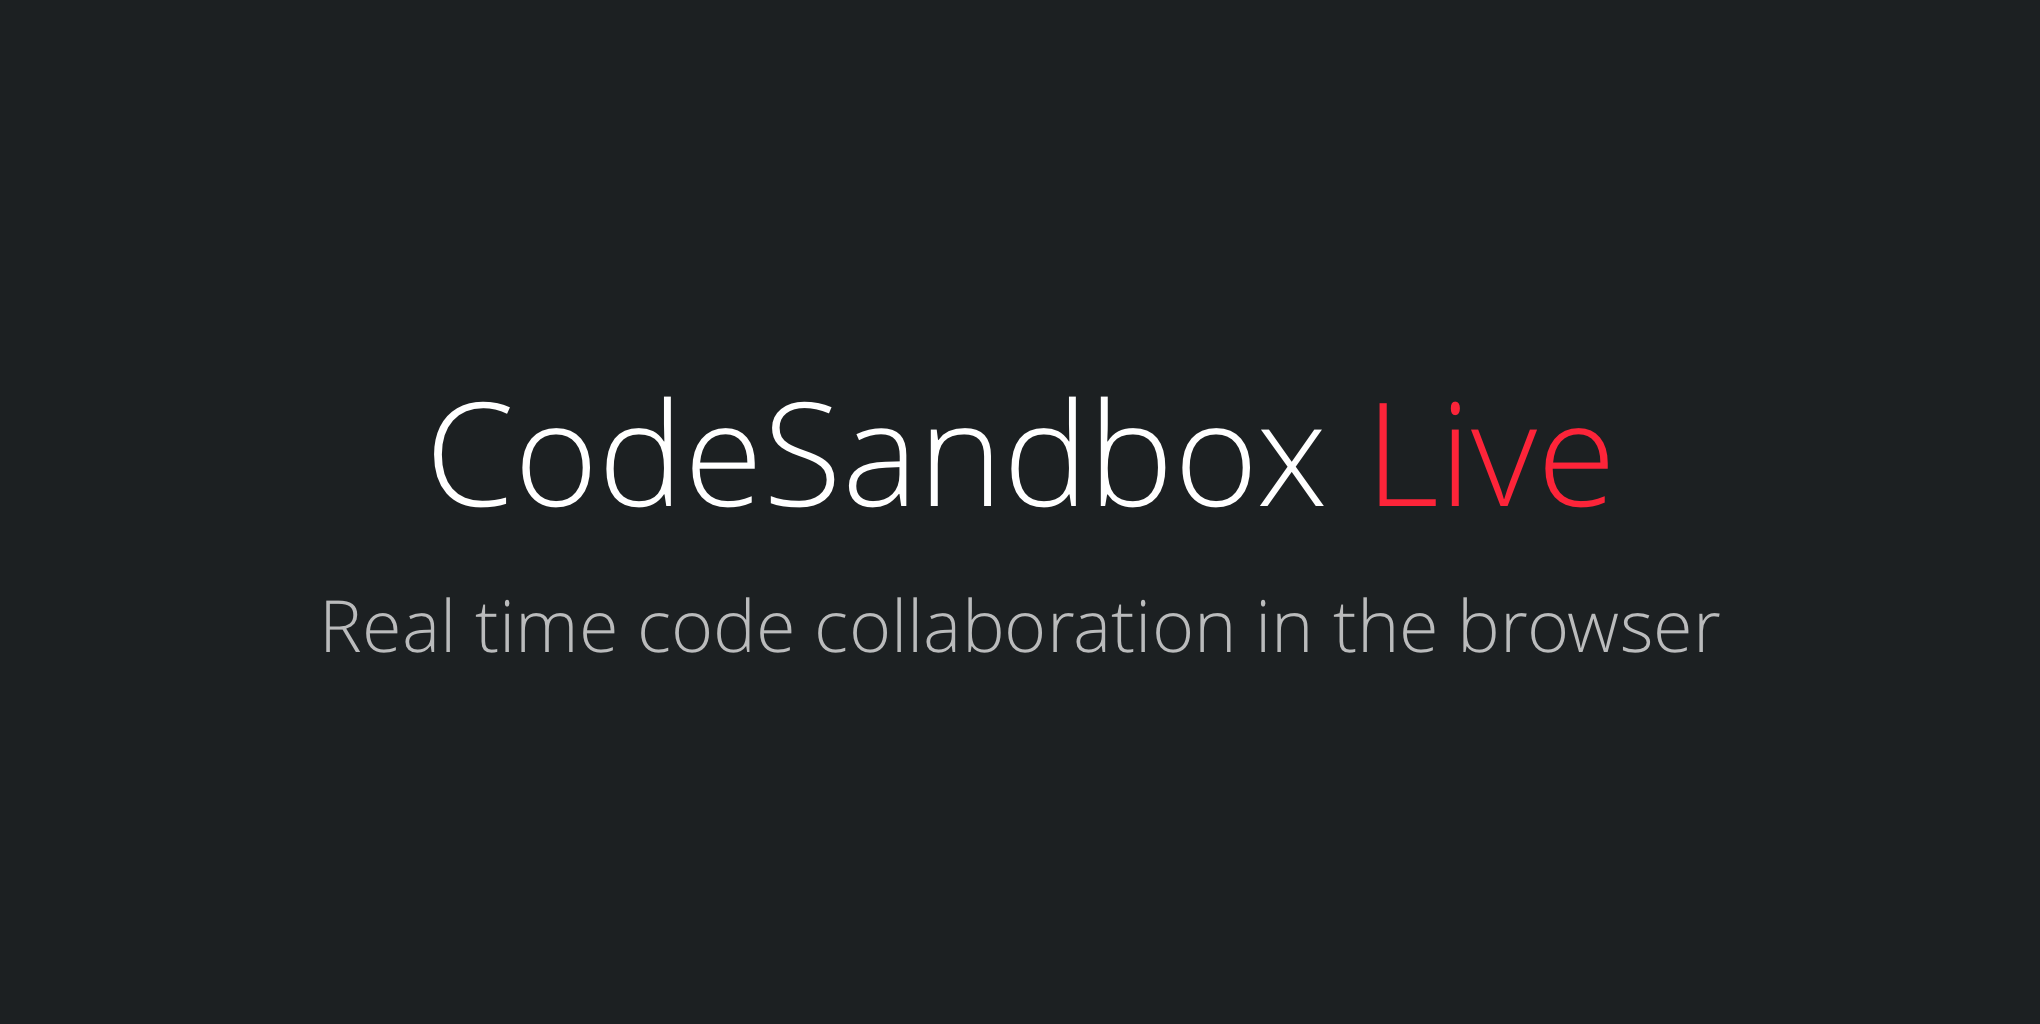 Introducing CodeSandbox Live: real time code collaboration